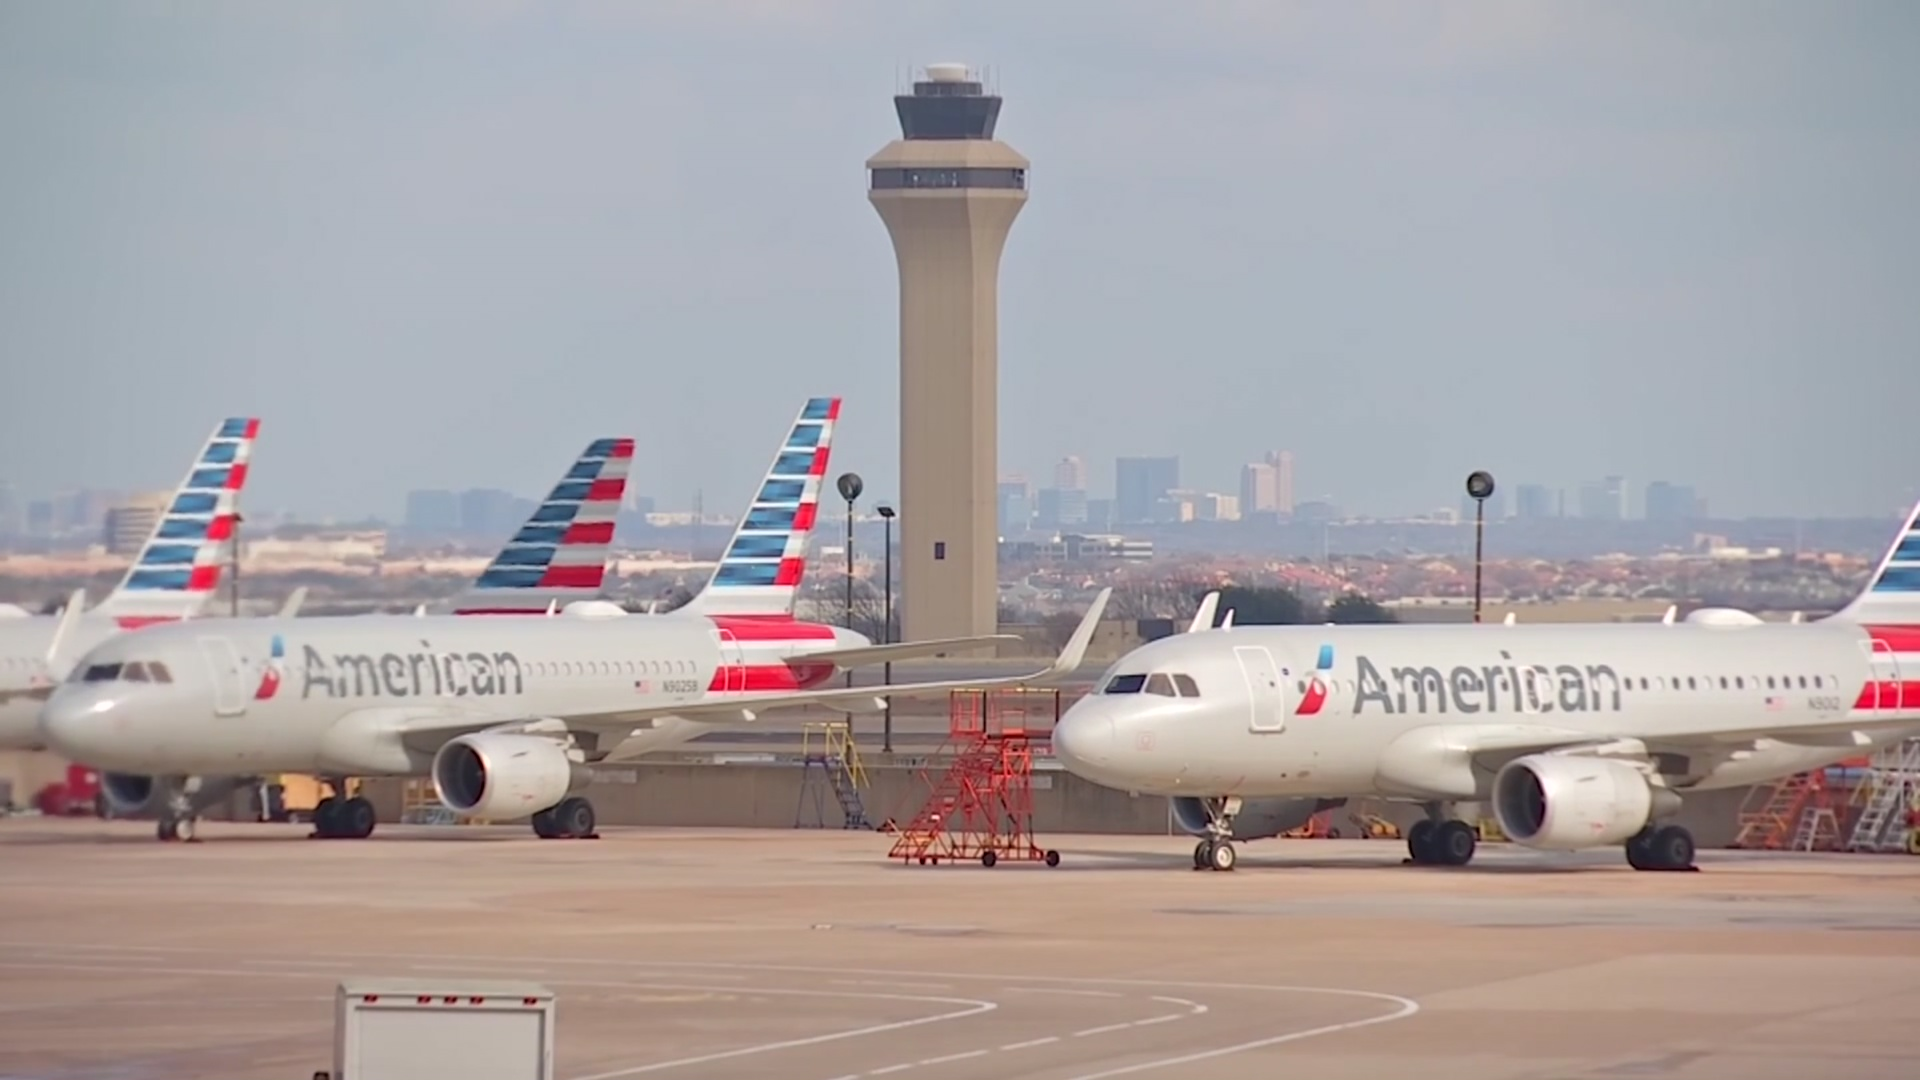 nbcdfw.com - Jack Highberger - Airline Industry Facing Massive Layoffs; Fort Worth Based American Airlines Set to Cut 19,000 Jobs